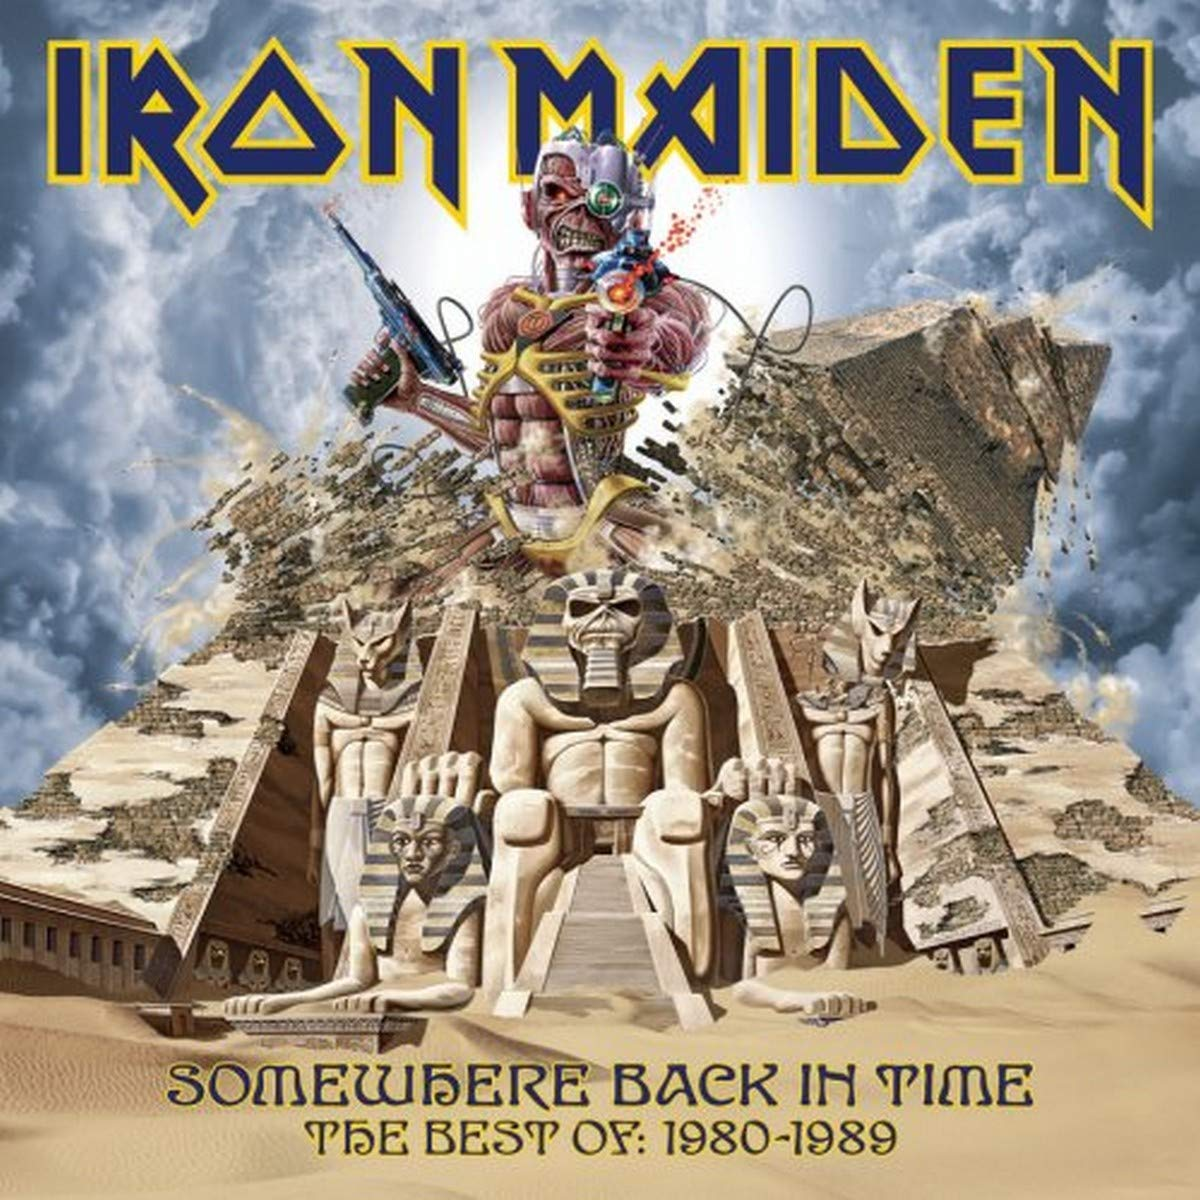 Iron Maiden - Somewhere Back In Time - The Best Of 1980-1989 by Iron Maiden